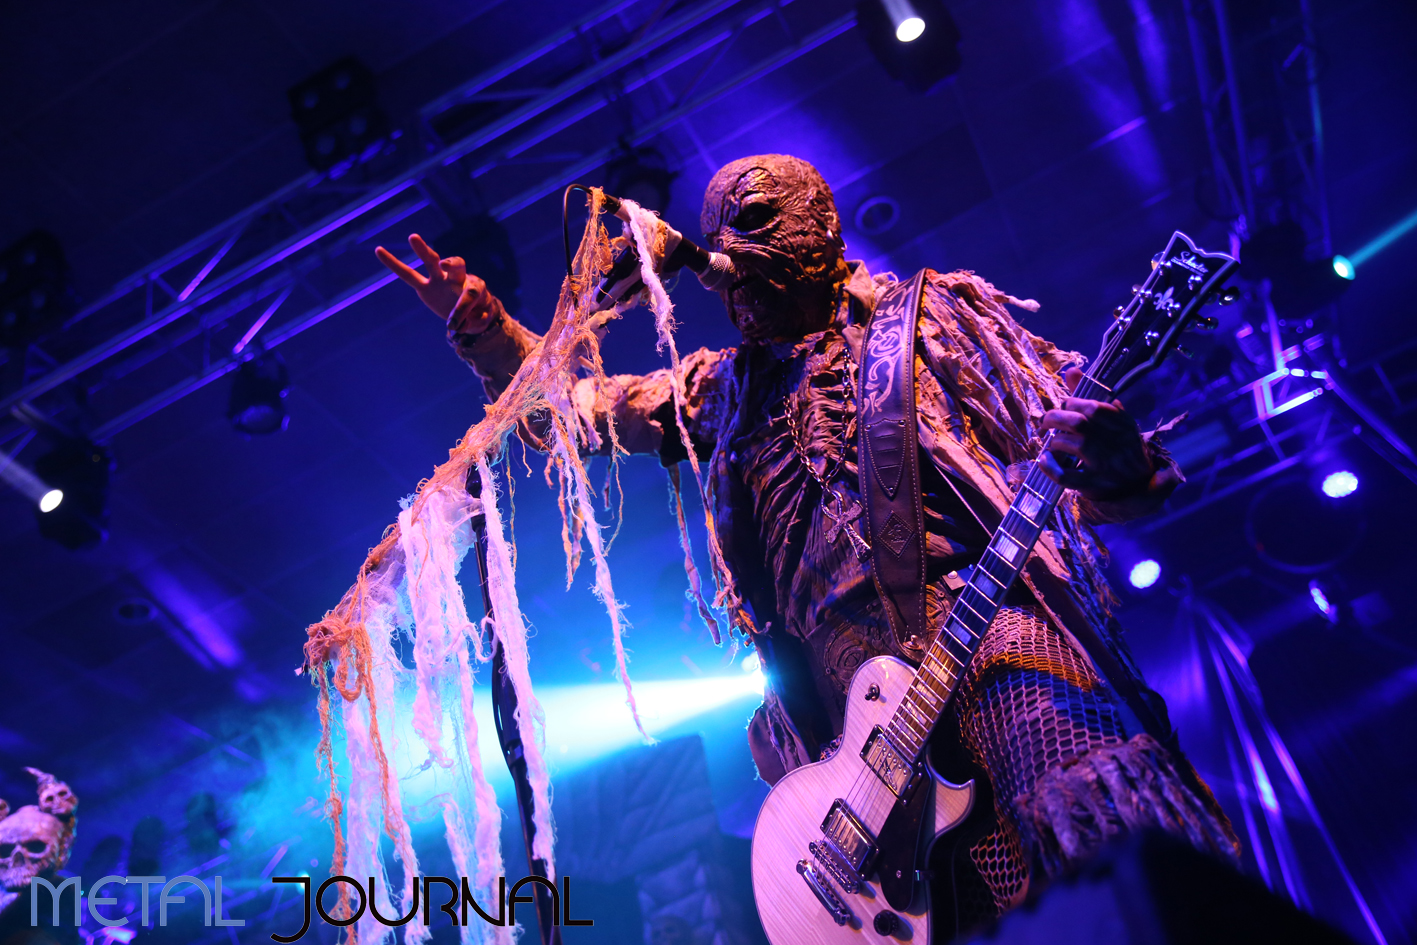 lordi - metal journal 2018 pic 7